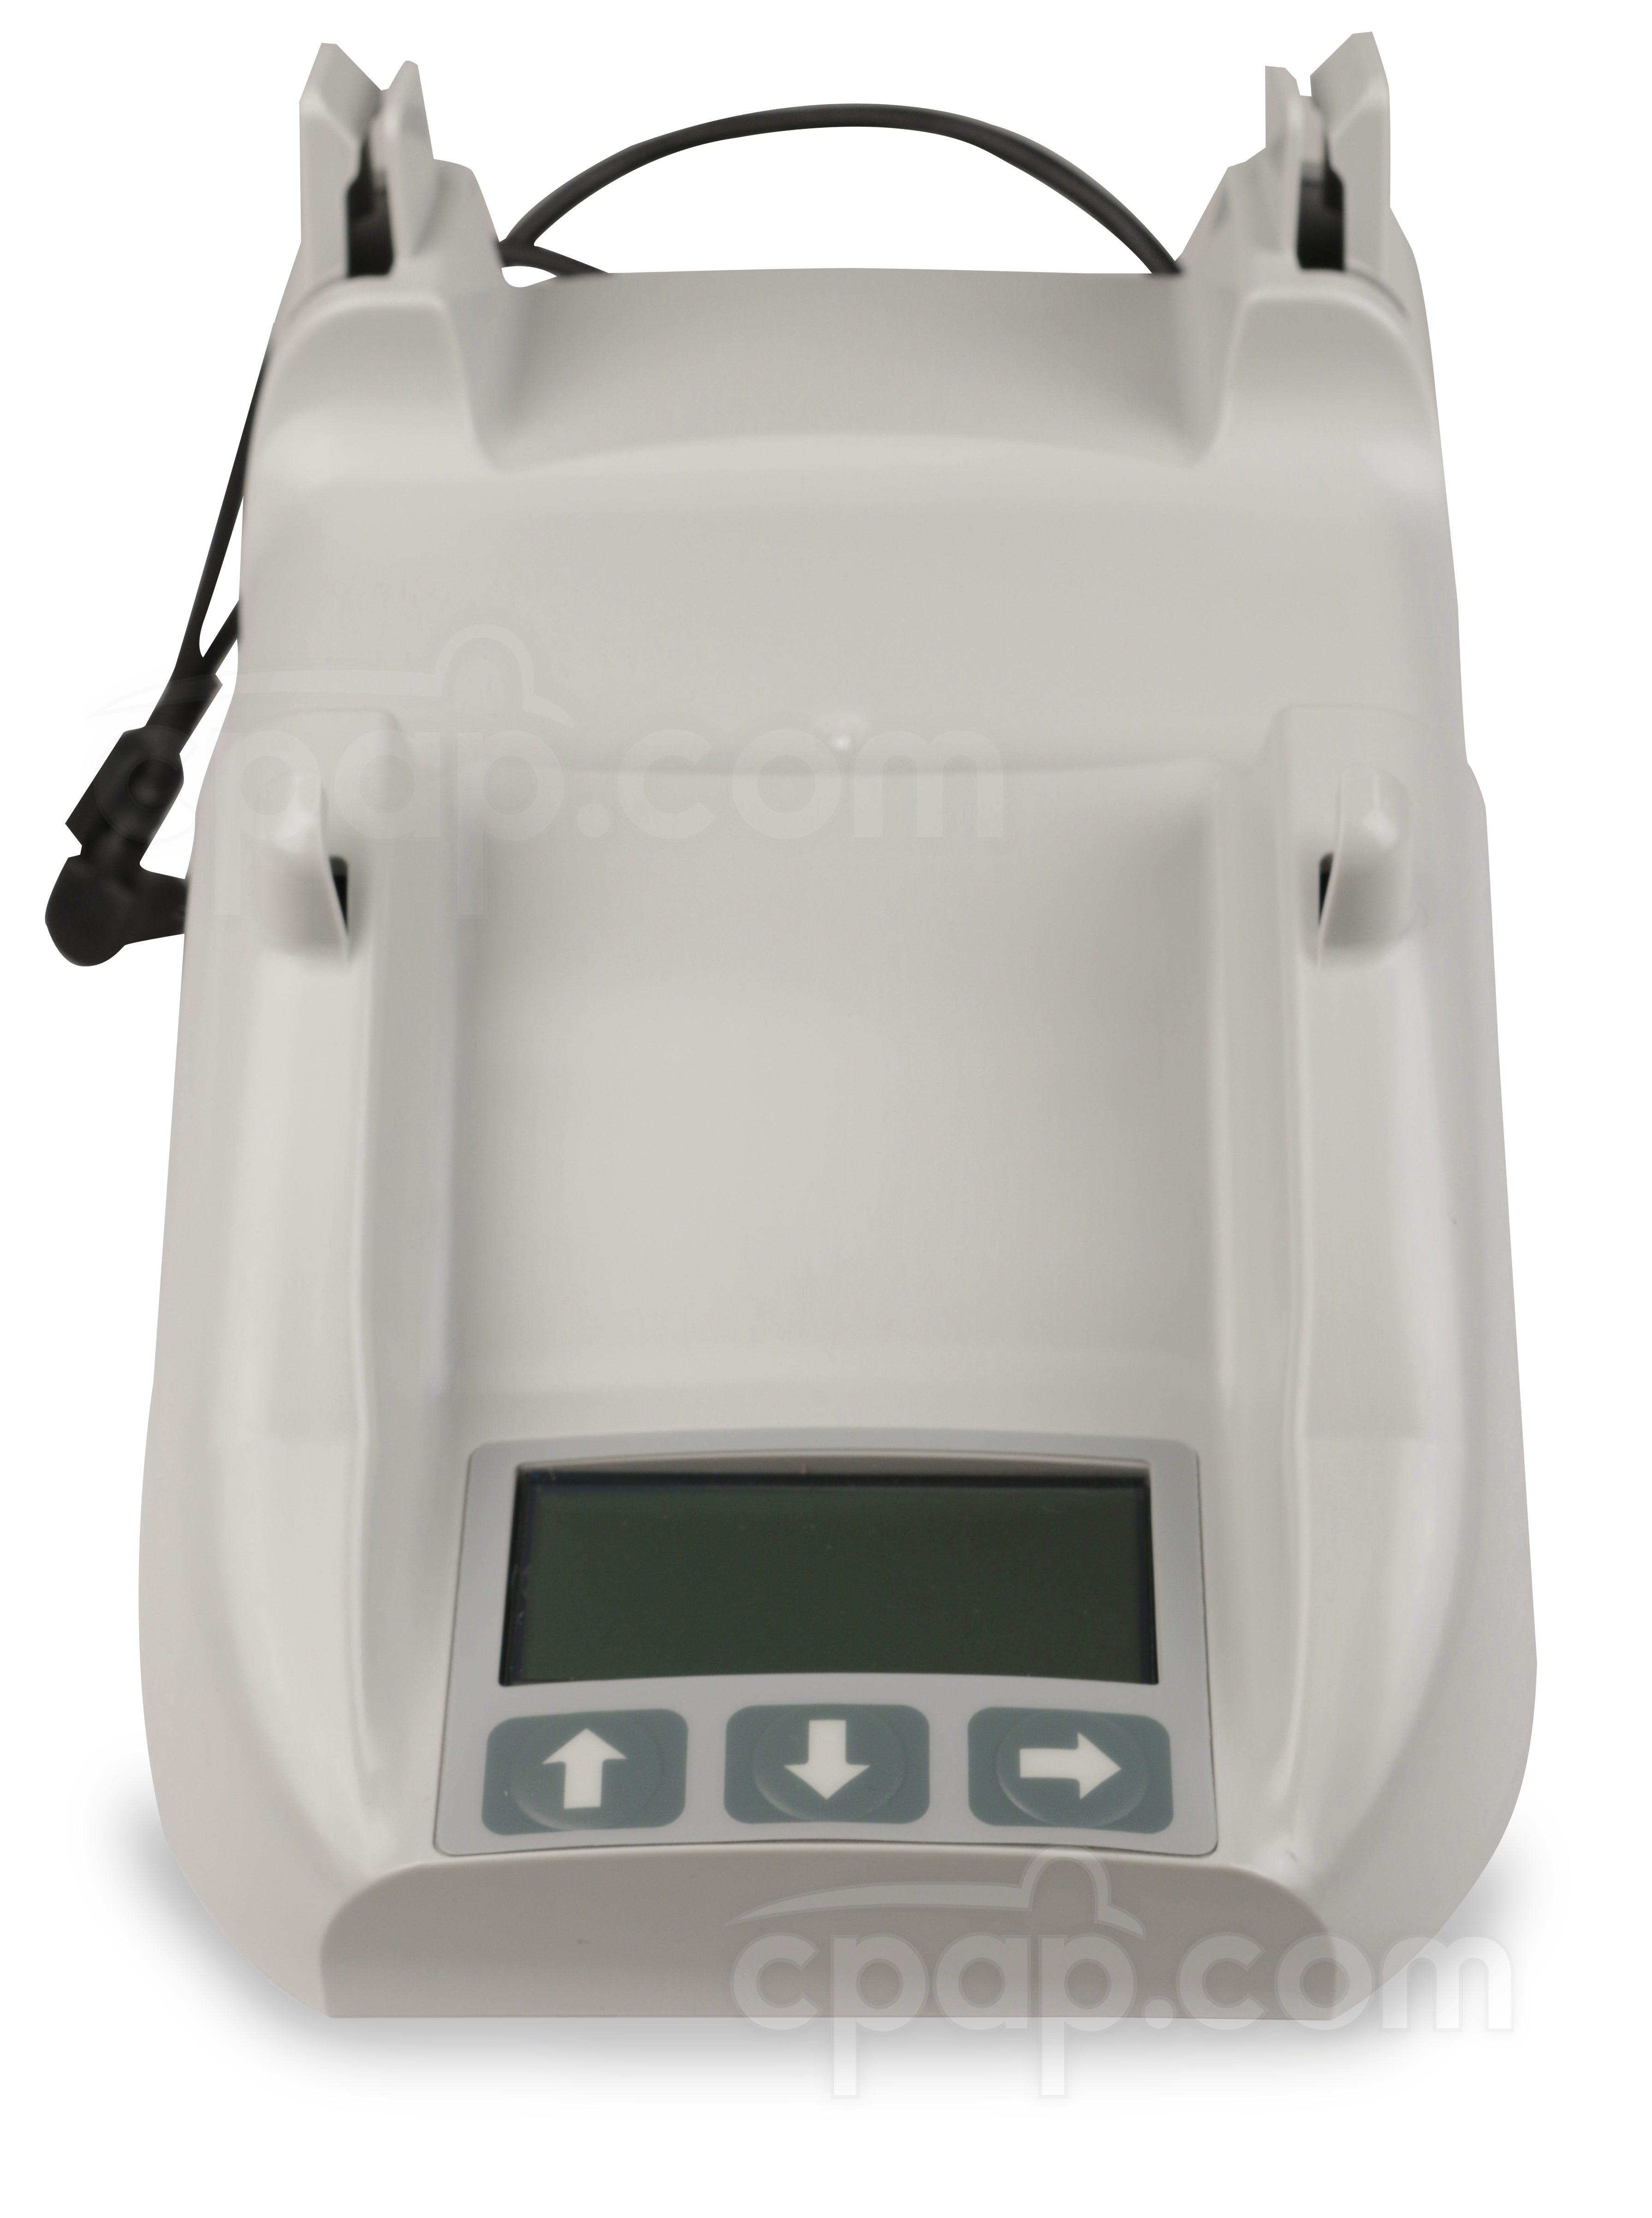 LCD Data Station for Transcend Travel Machines